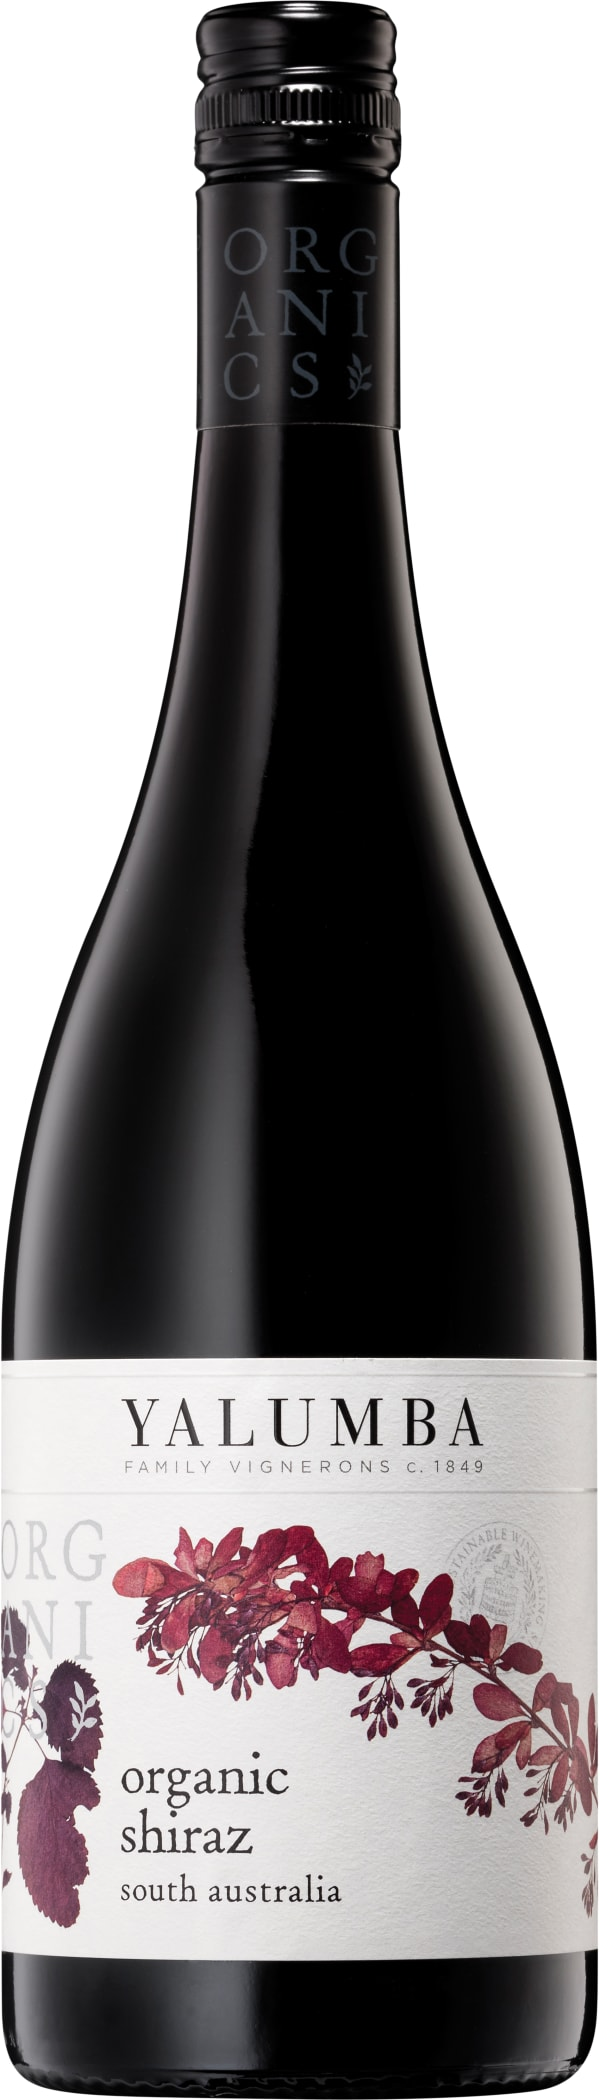 Yalumba Organic Shiraz 2018